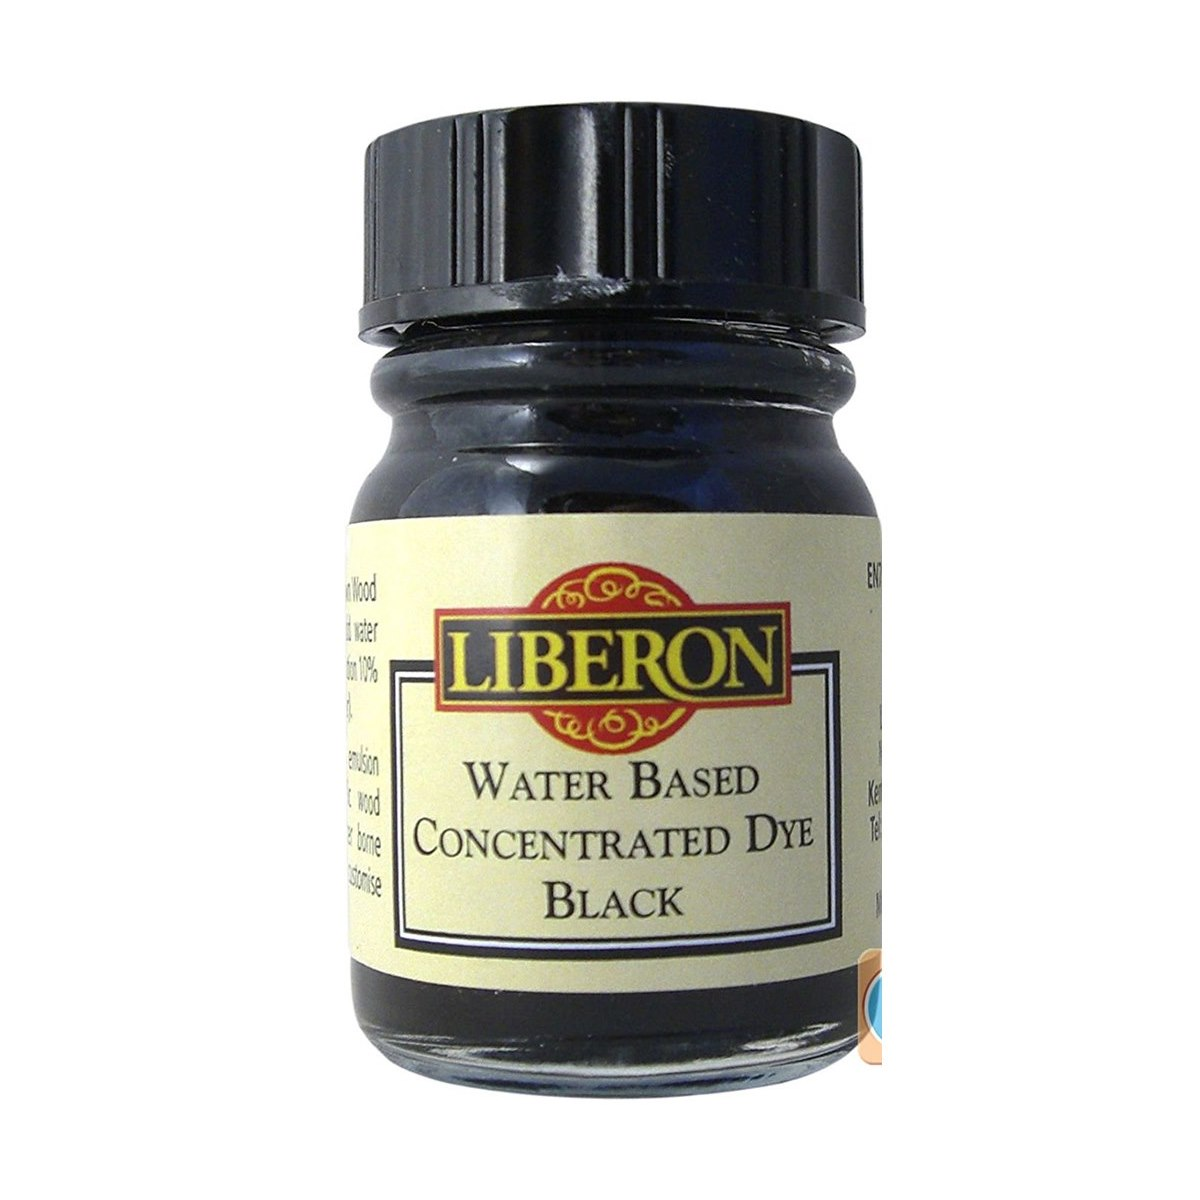 Liberon Water Based Concentrated Dye Black